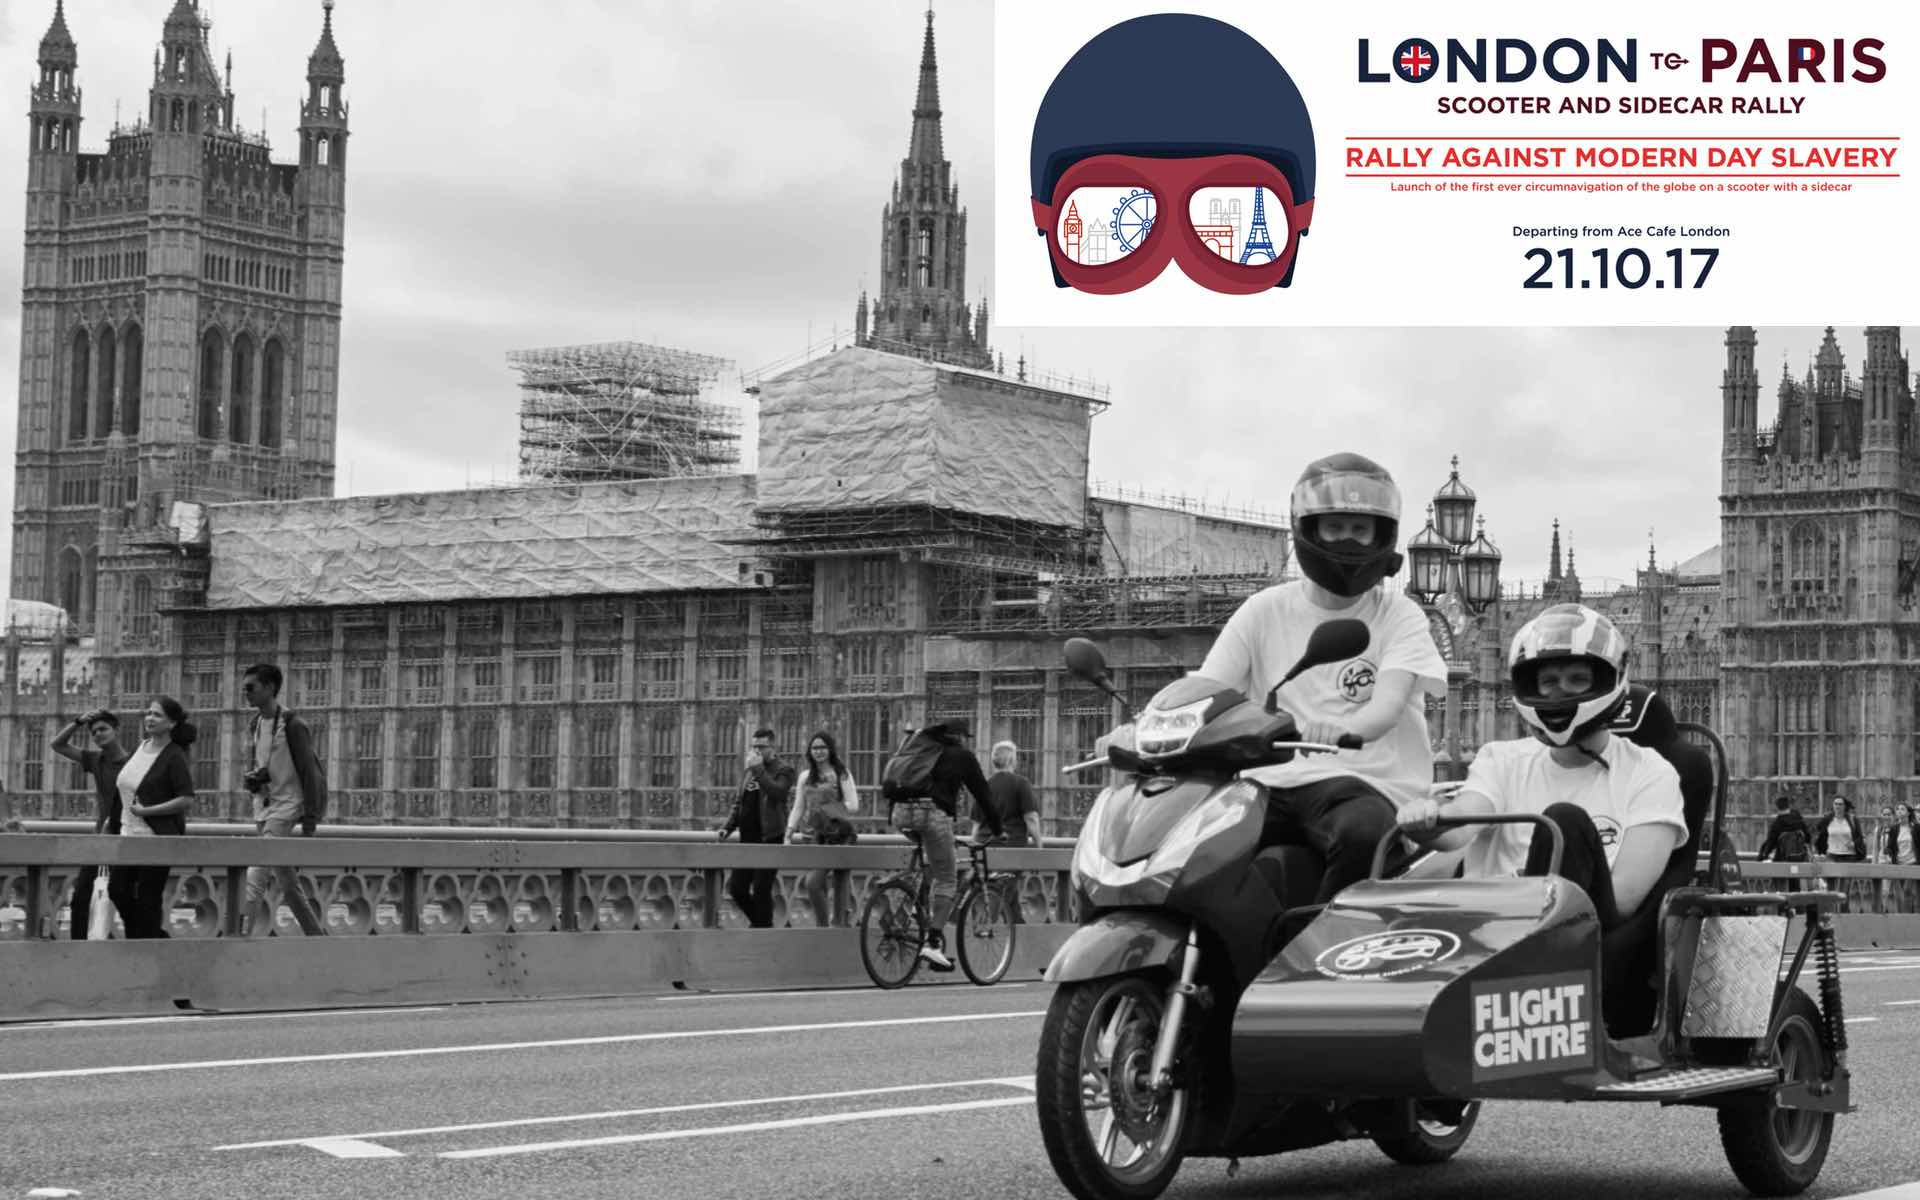 London to Paris Scooter and Sidecar Rally - OVERLAND magazine